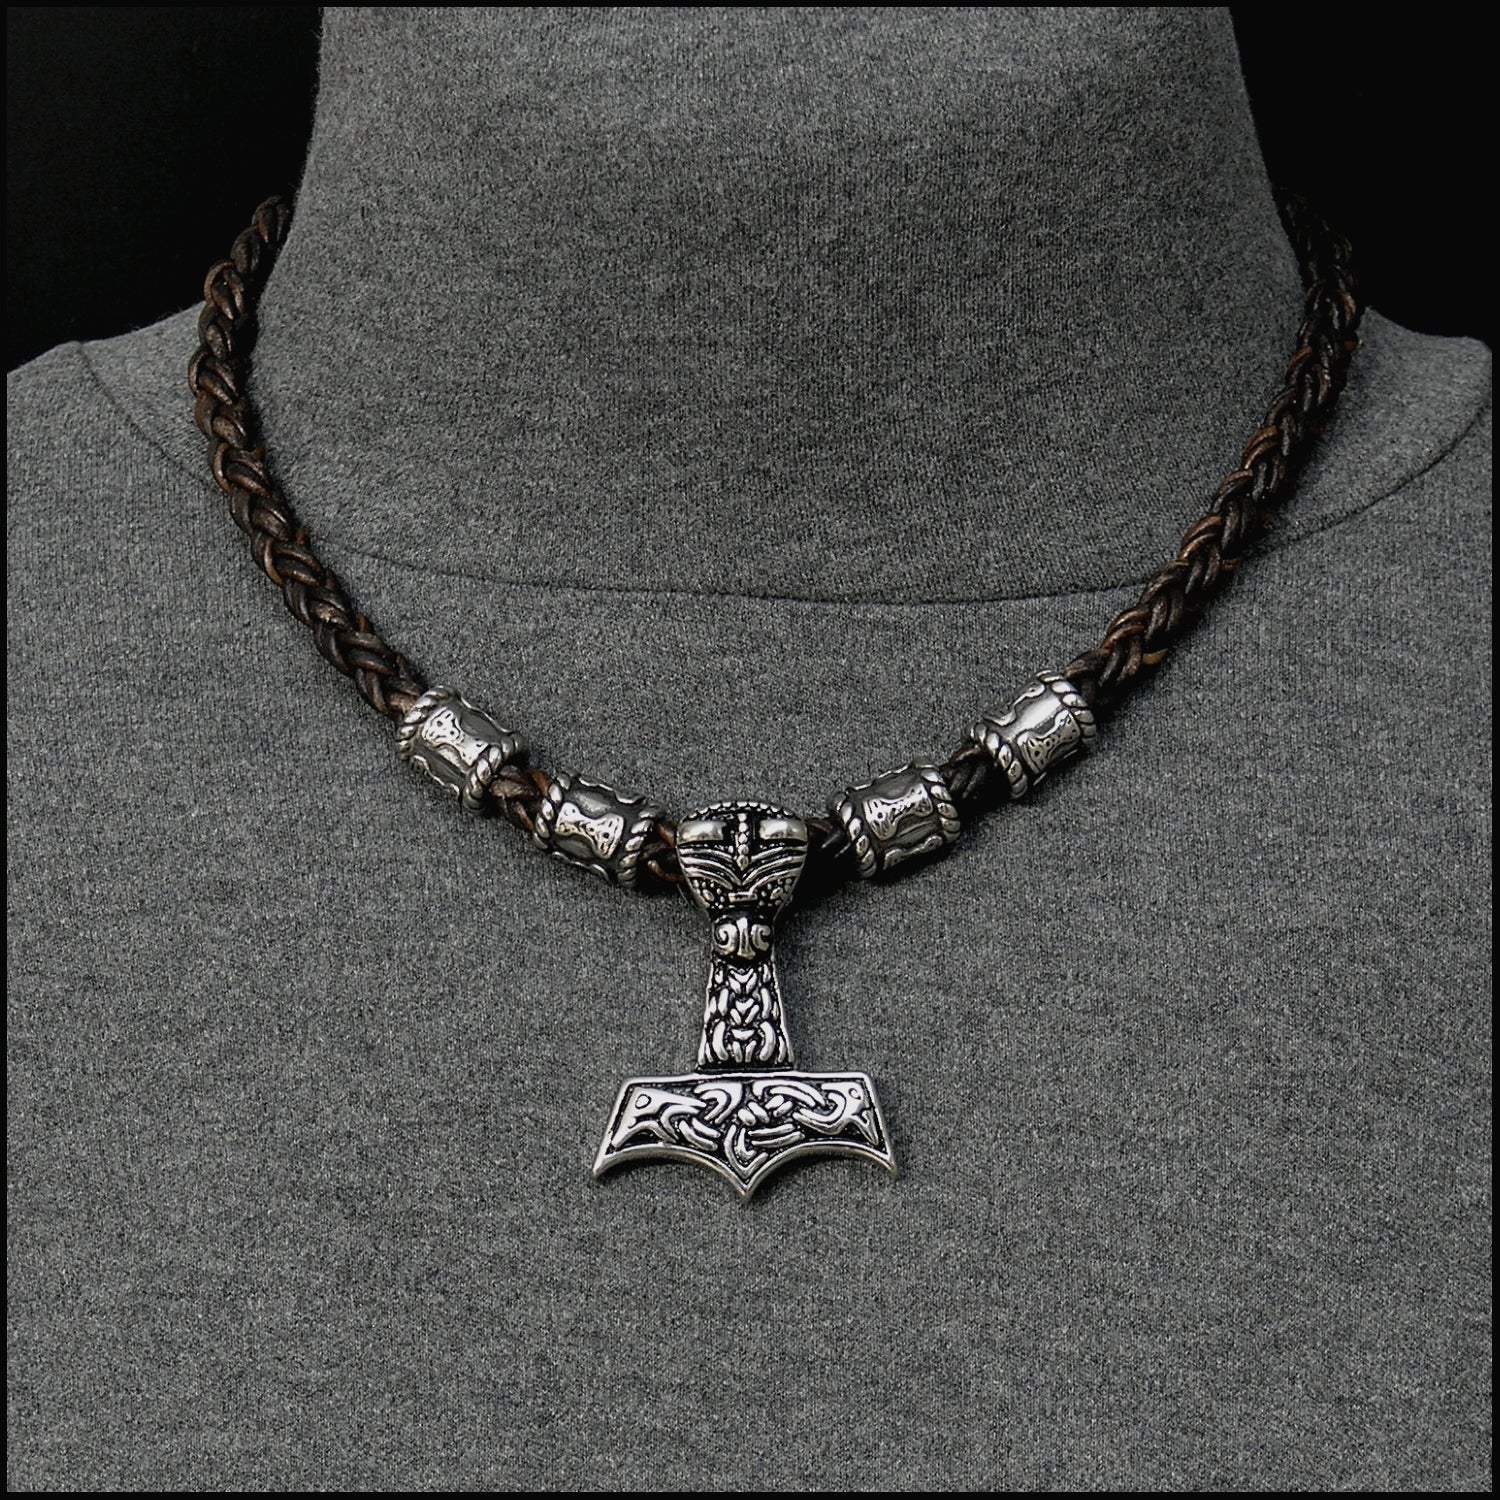 Large Beast Head Mjolnir on Viking Braid Leather Necklace With Mjolnir Design Beads